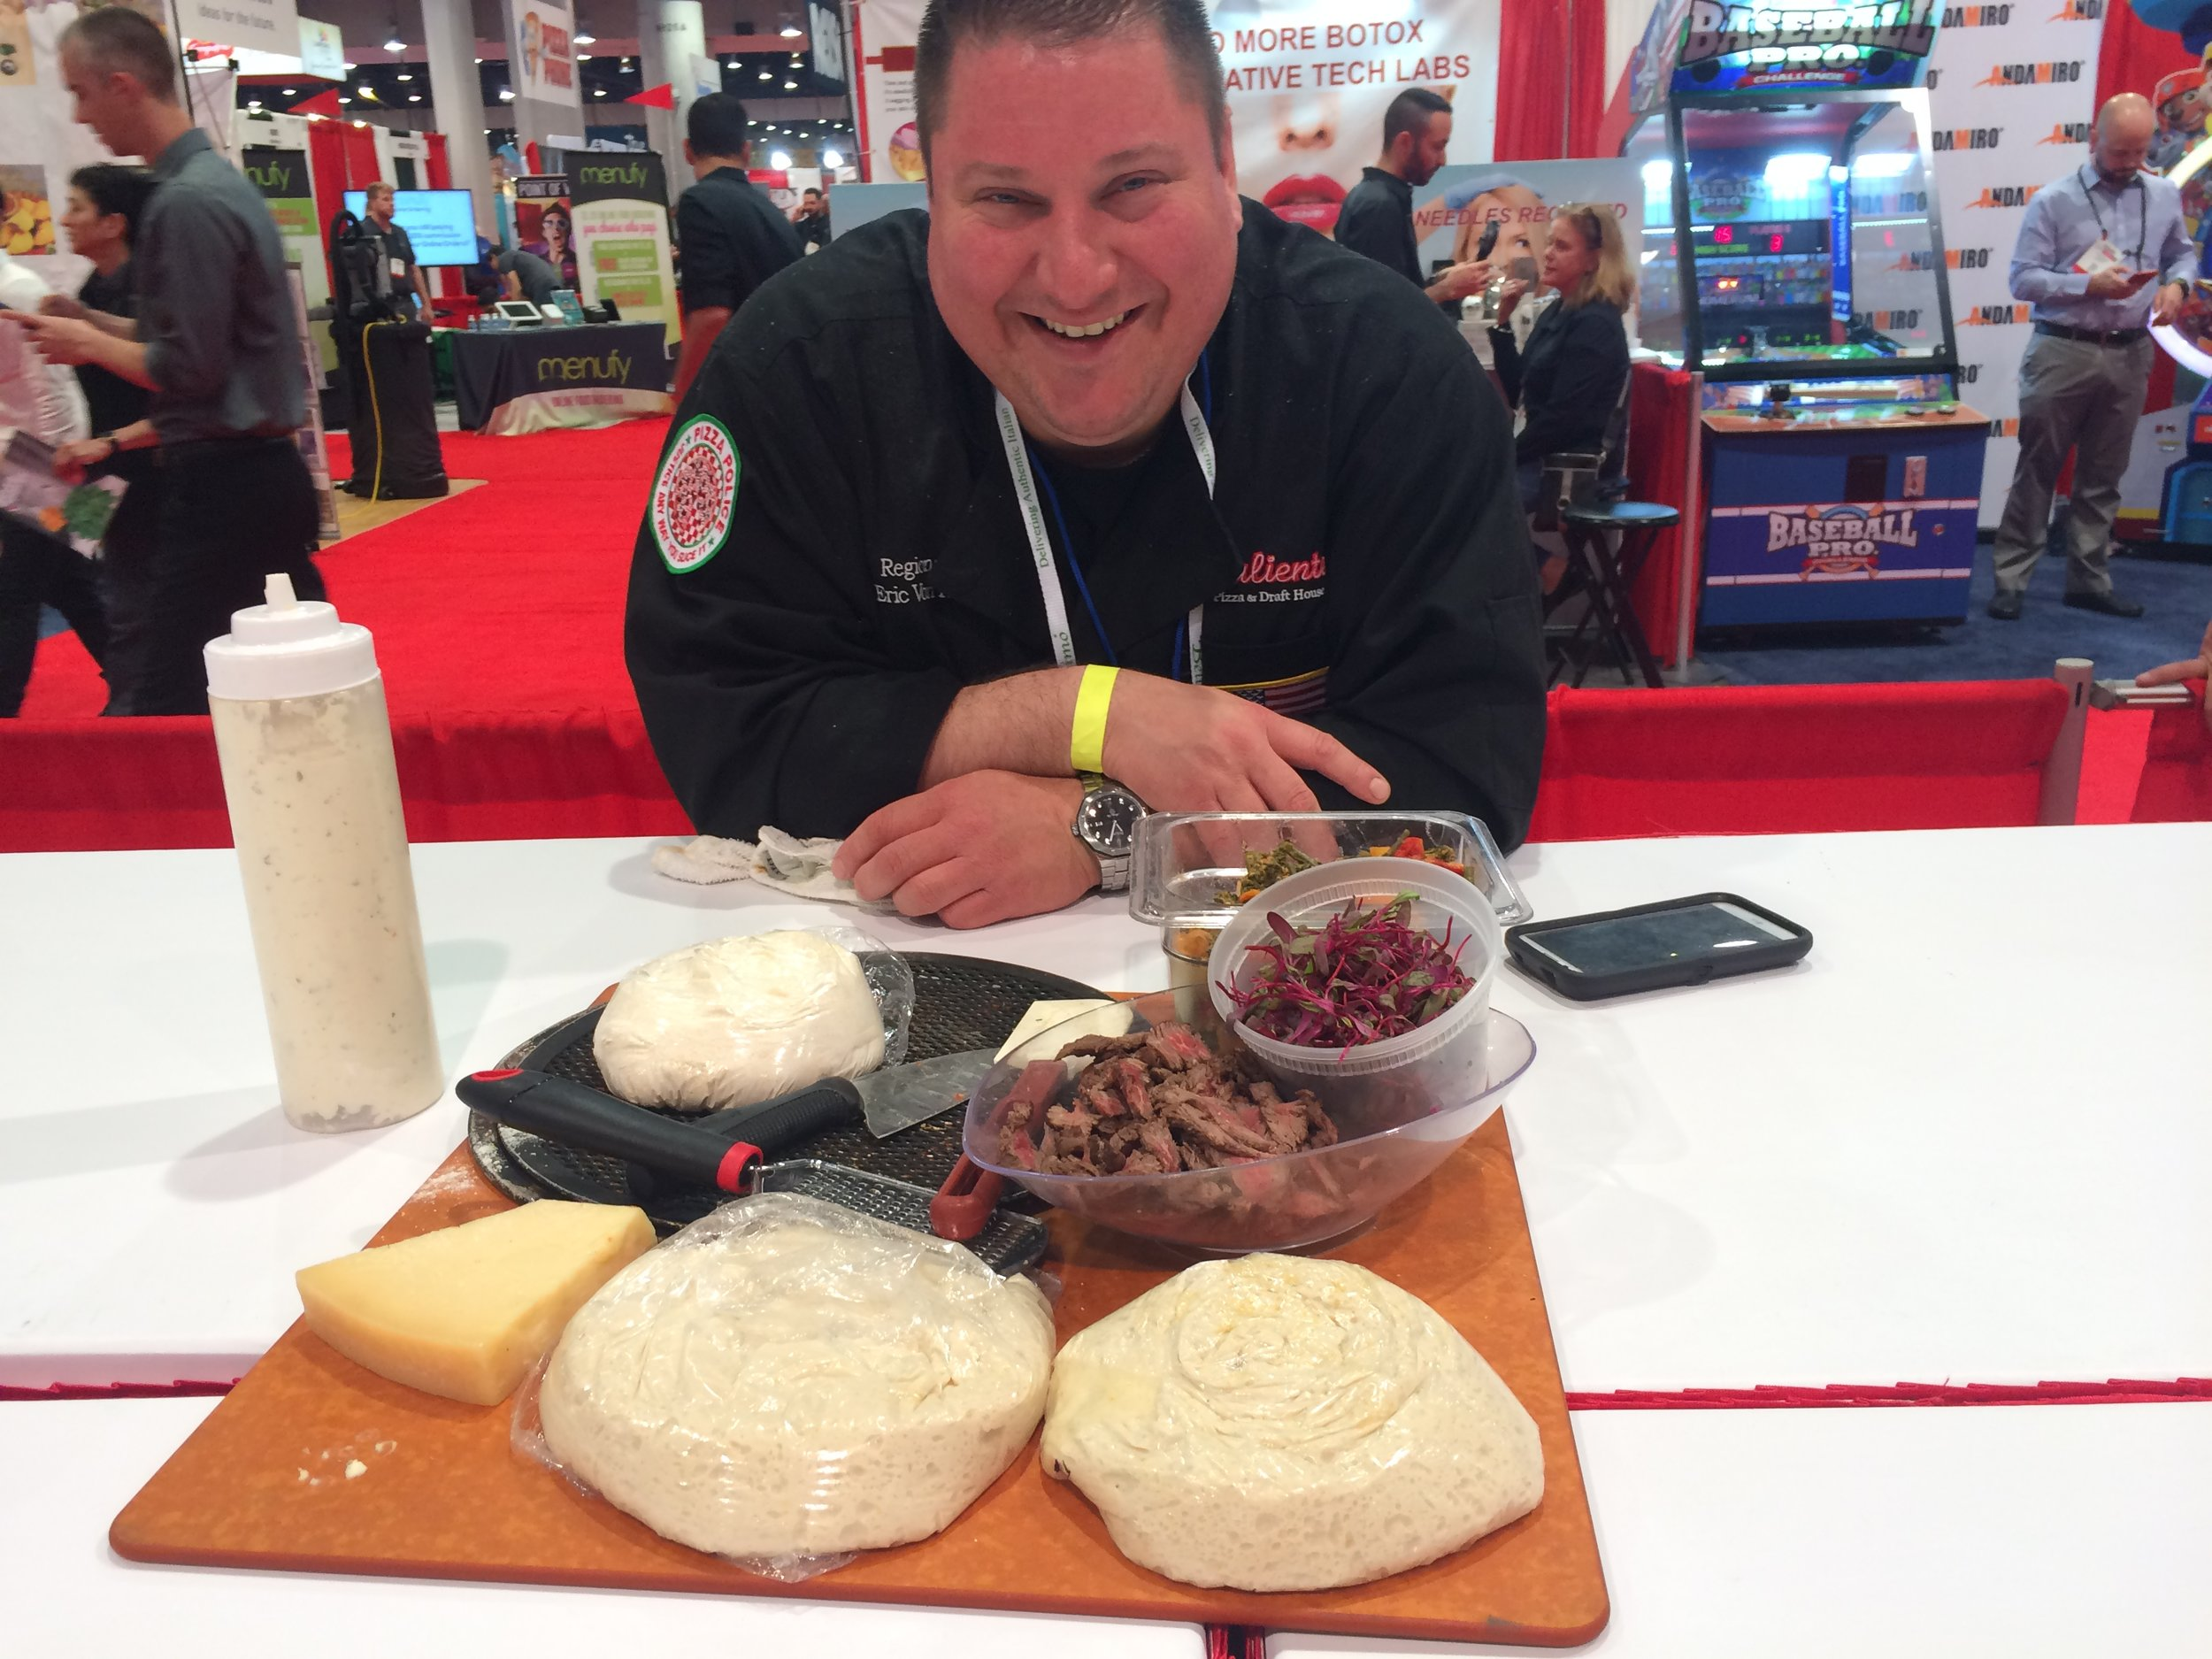 Eric Von Hansen of Caliente waiting to compete at the 2017 Pizza Expo